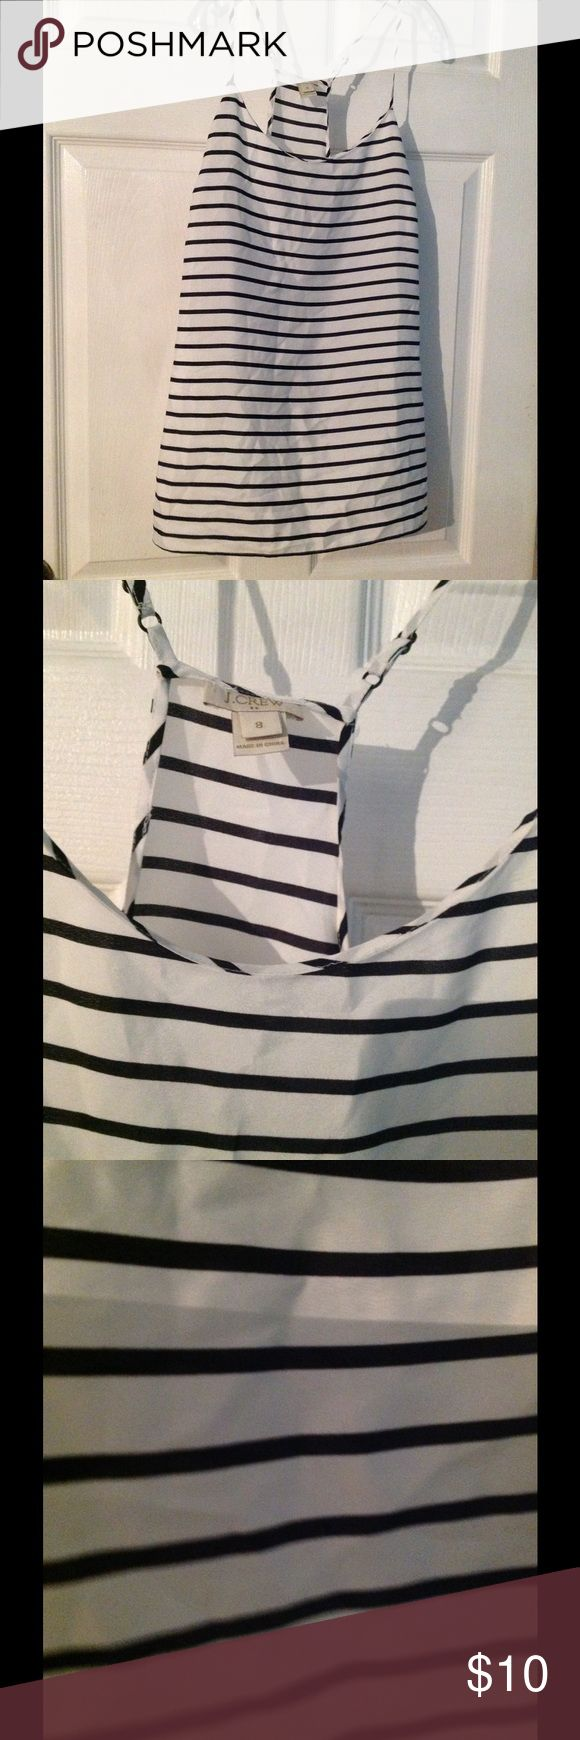 Blouse Black and white cami top.  Worn as an outer garment. J. Crew Tops Camisoles